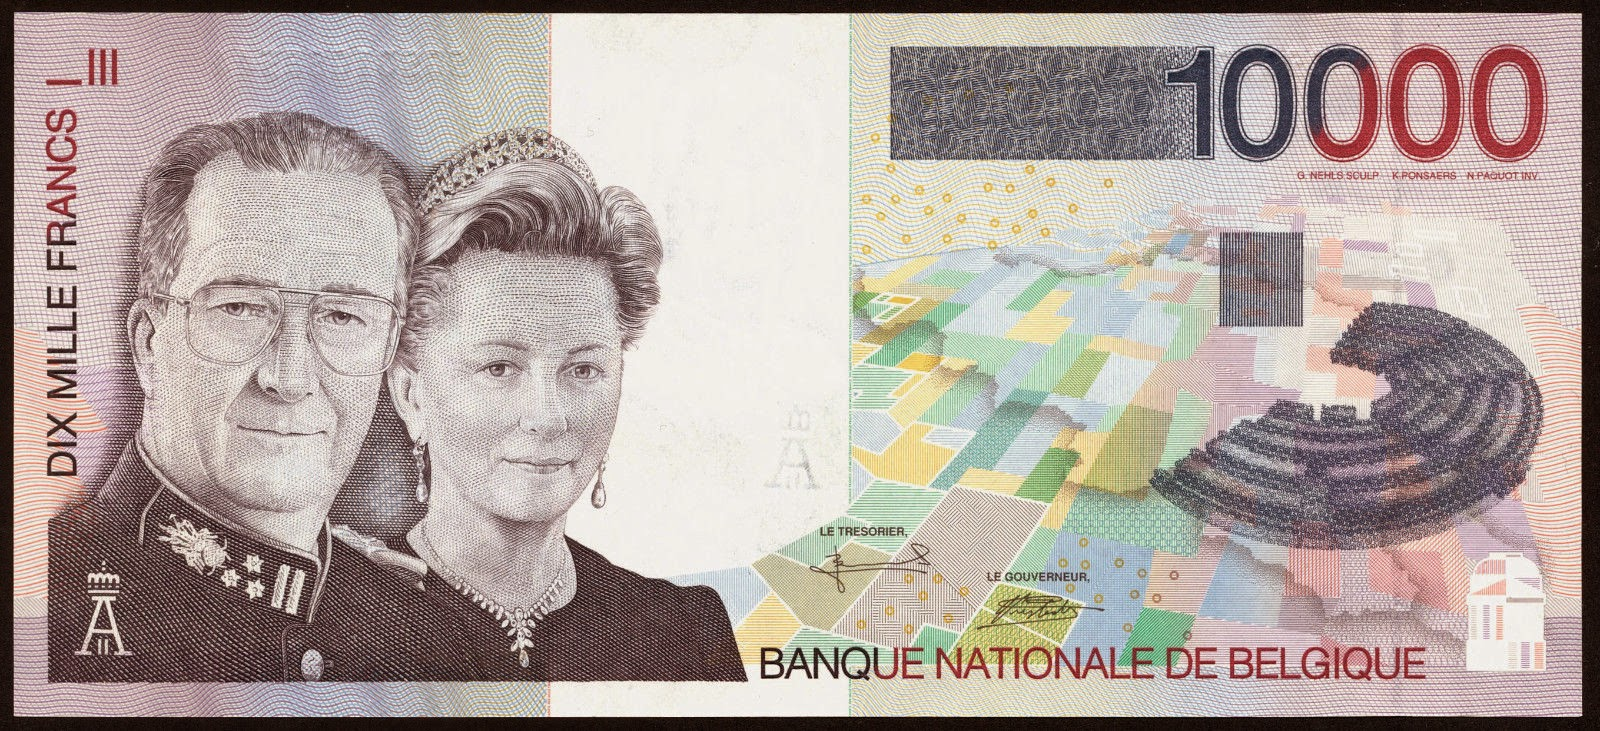 Belgium Banknotes 10000 Belgian Francs banknote 1997 King Albert II and Queen Paola